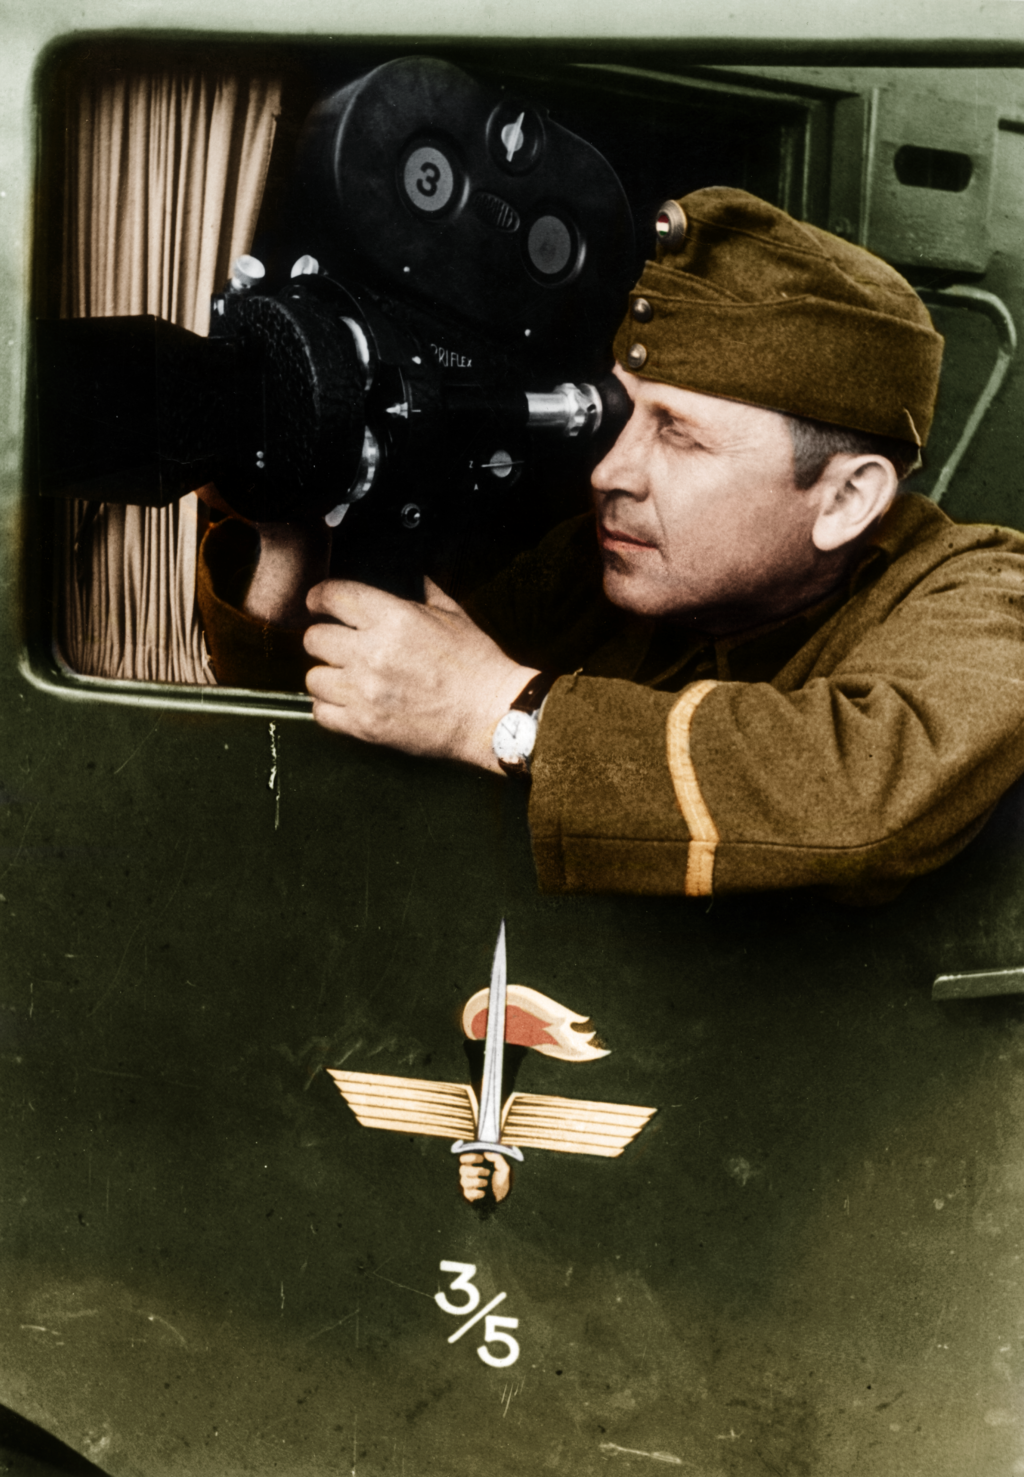 haditudosito_warreporter_by_greenh0rn-d7t6uew.png